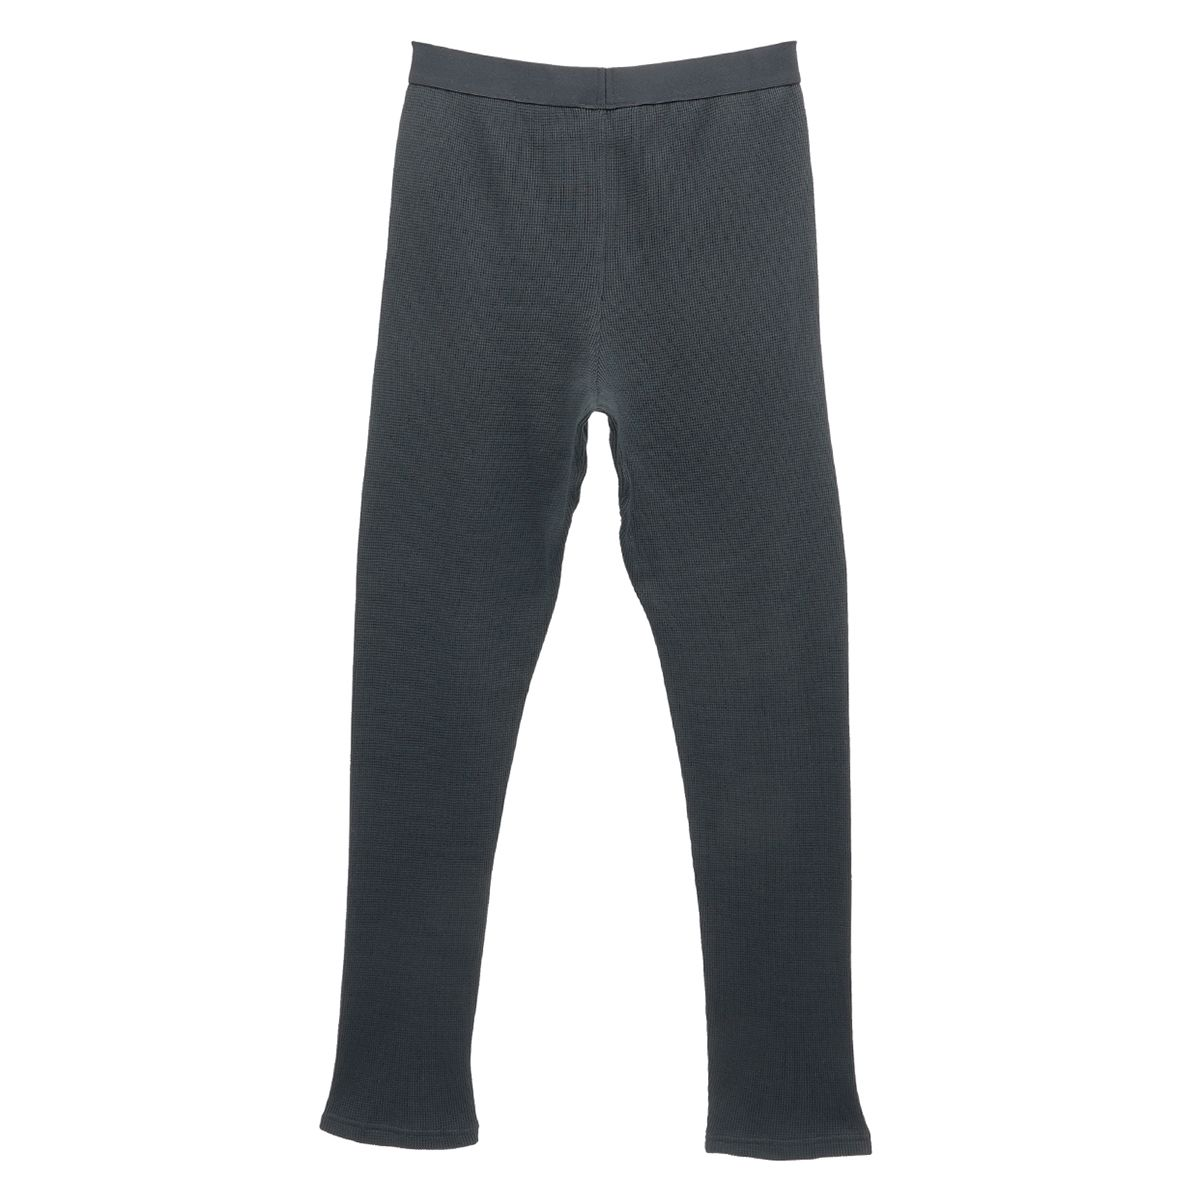 ESSENTIALS THERMAL PANT / 001 : BLACK